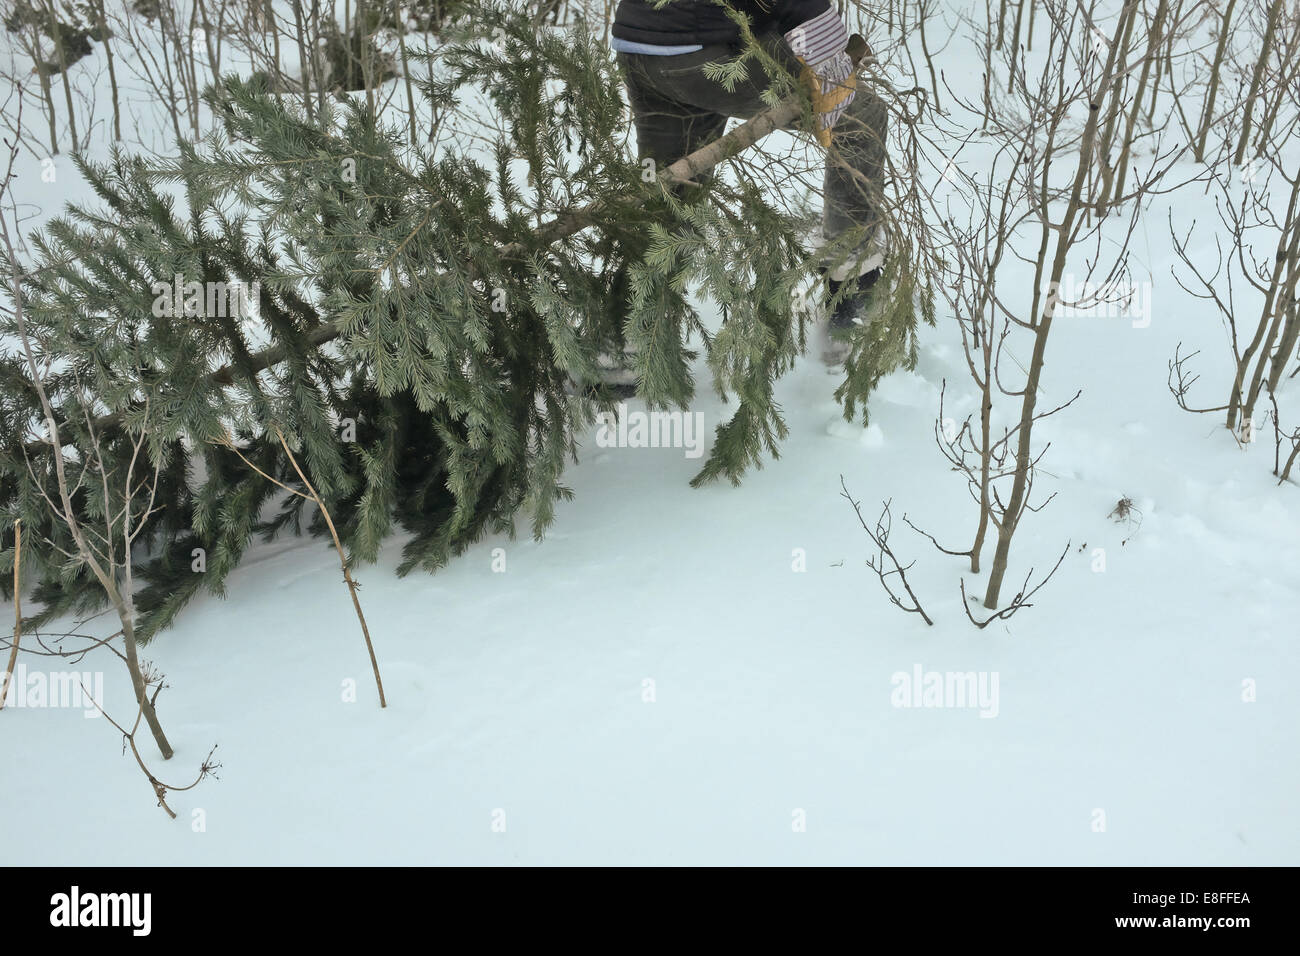 Tree dragged through snow by man - Stock Image